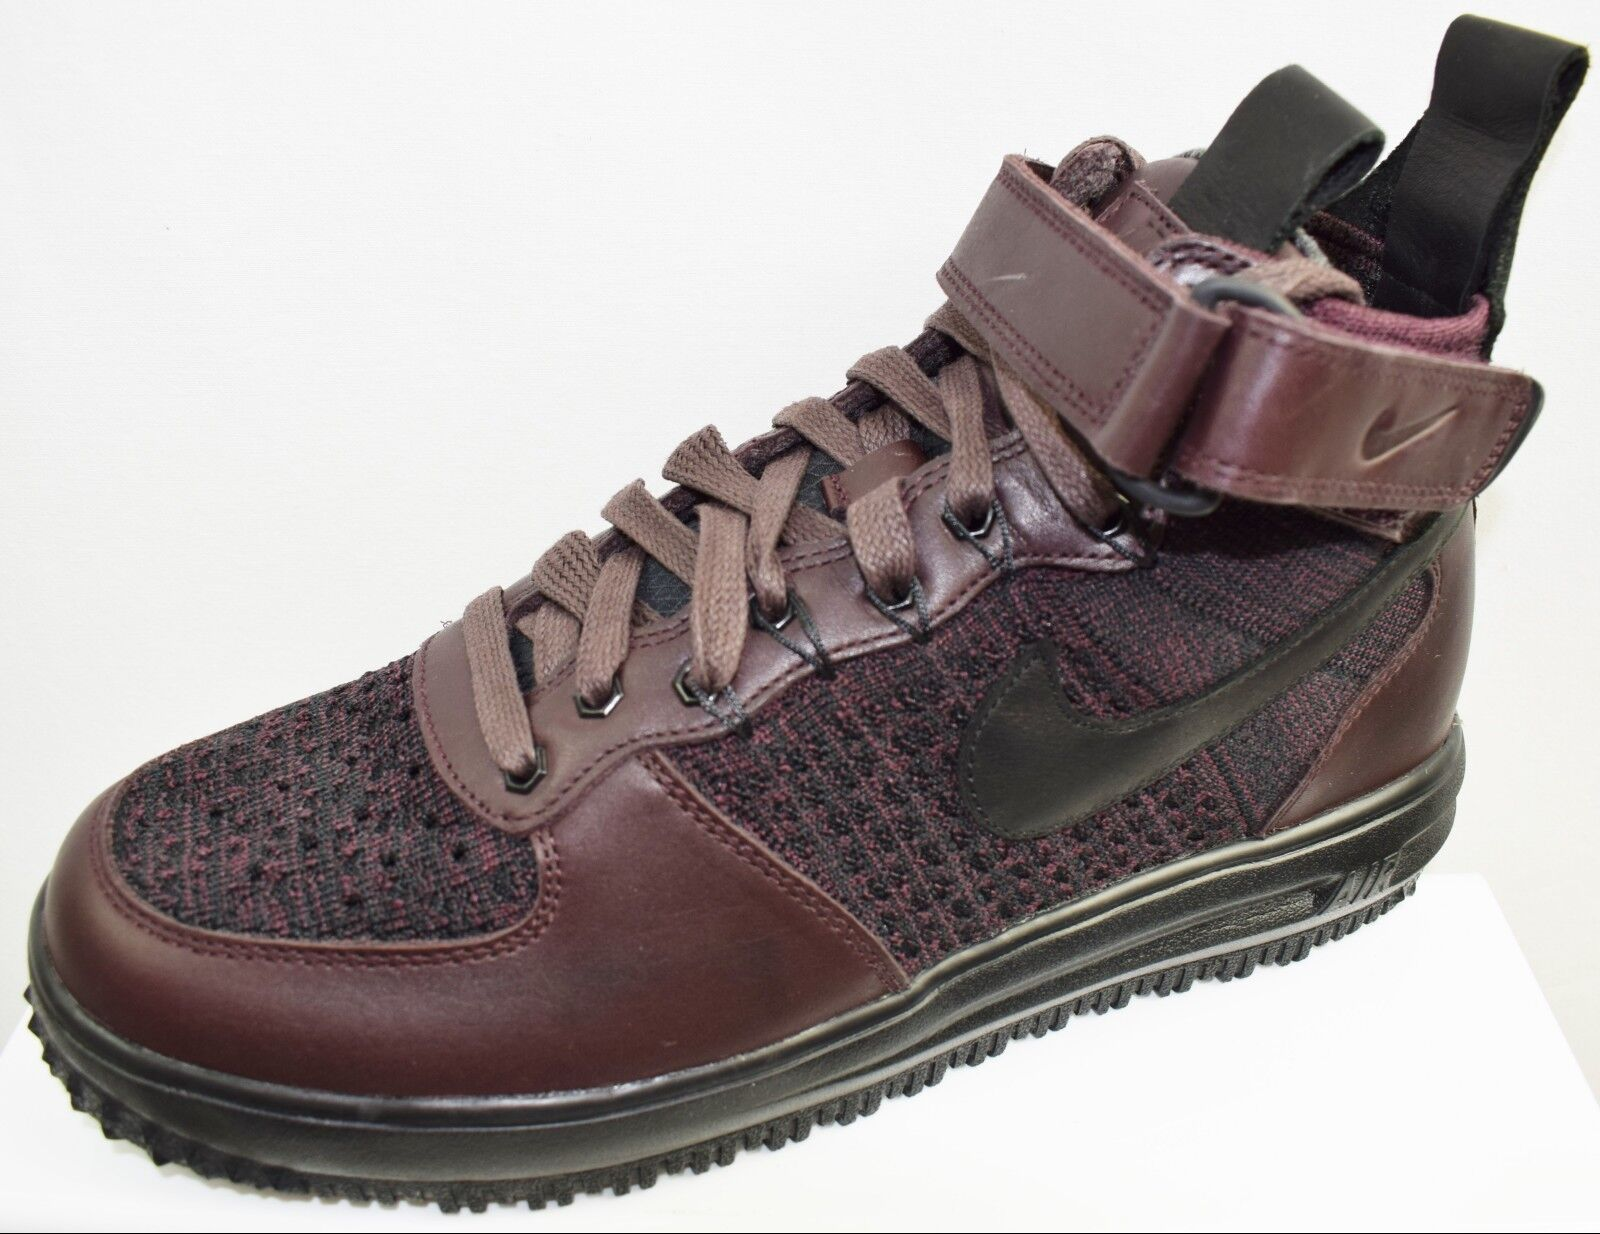 Nike Lunar Force 1 Flyknit Homme Baskets Neuves Taille Taille Taille (DC15) - S 6a1832